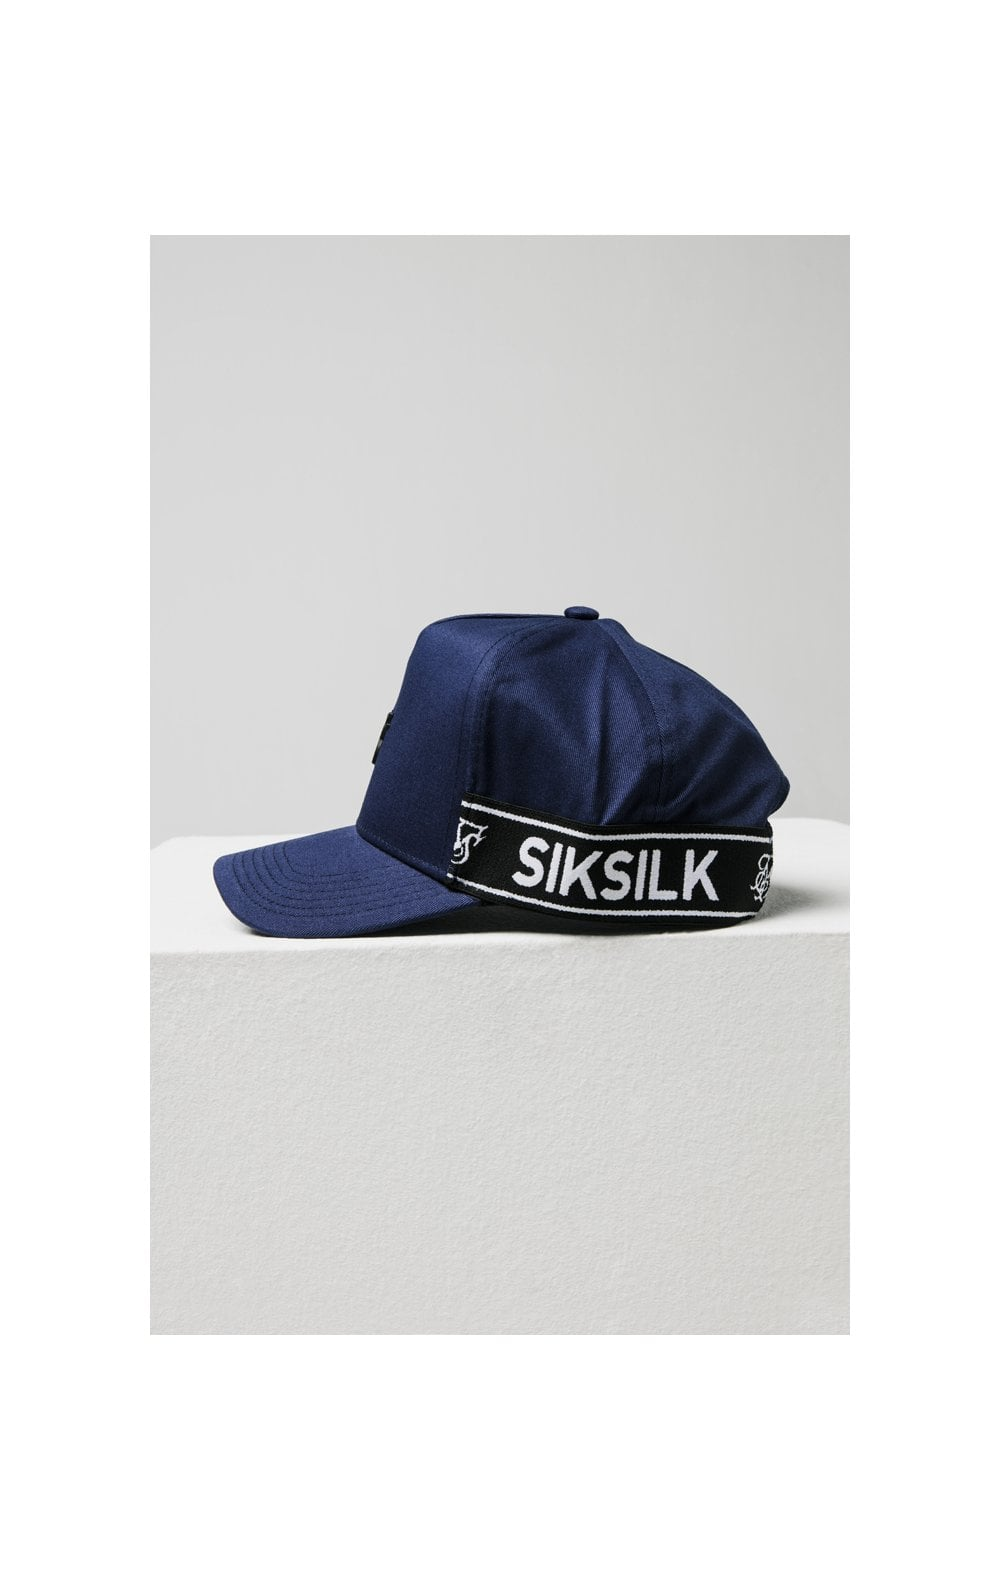 SikSilk Stretch Fit Full Trucker - Navy (4)